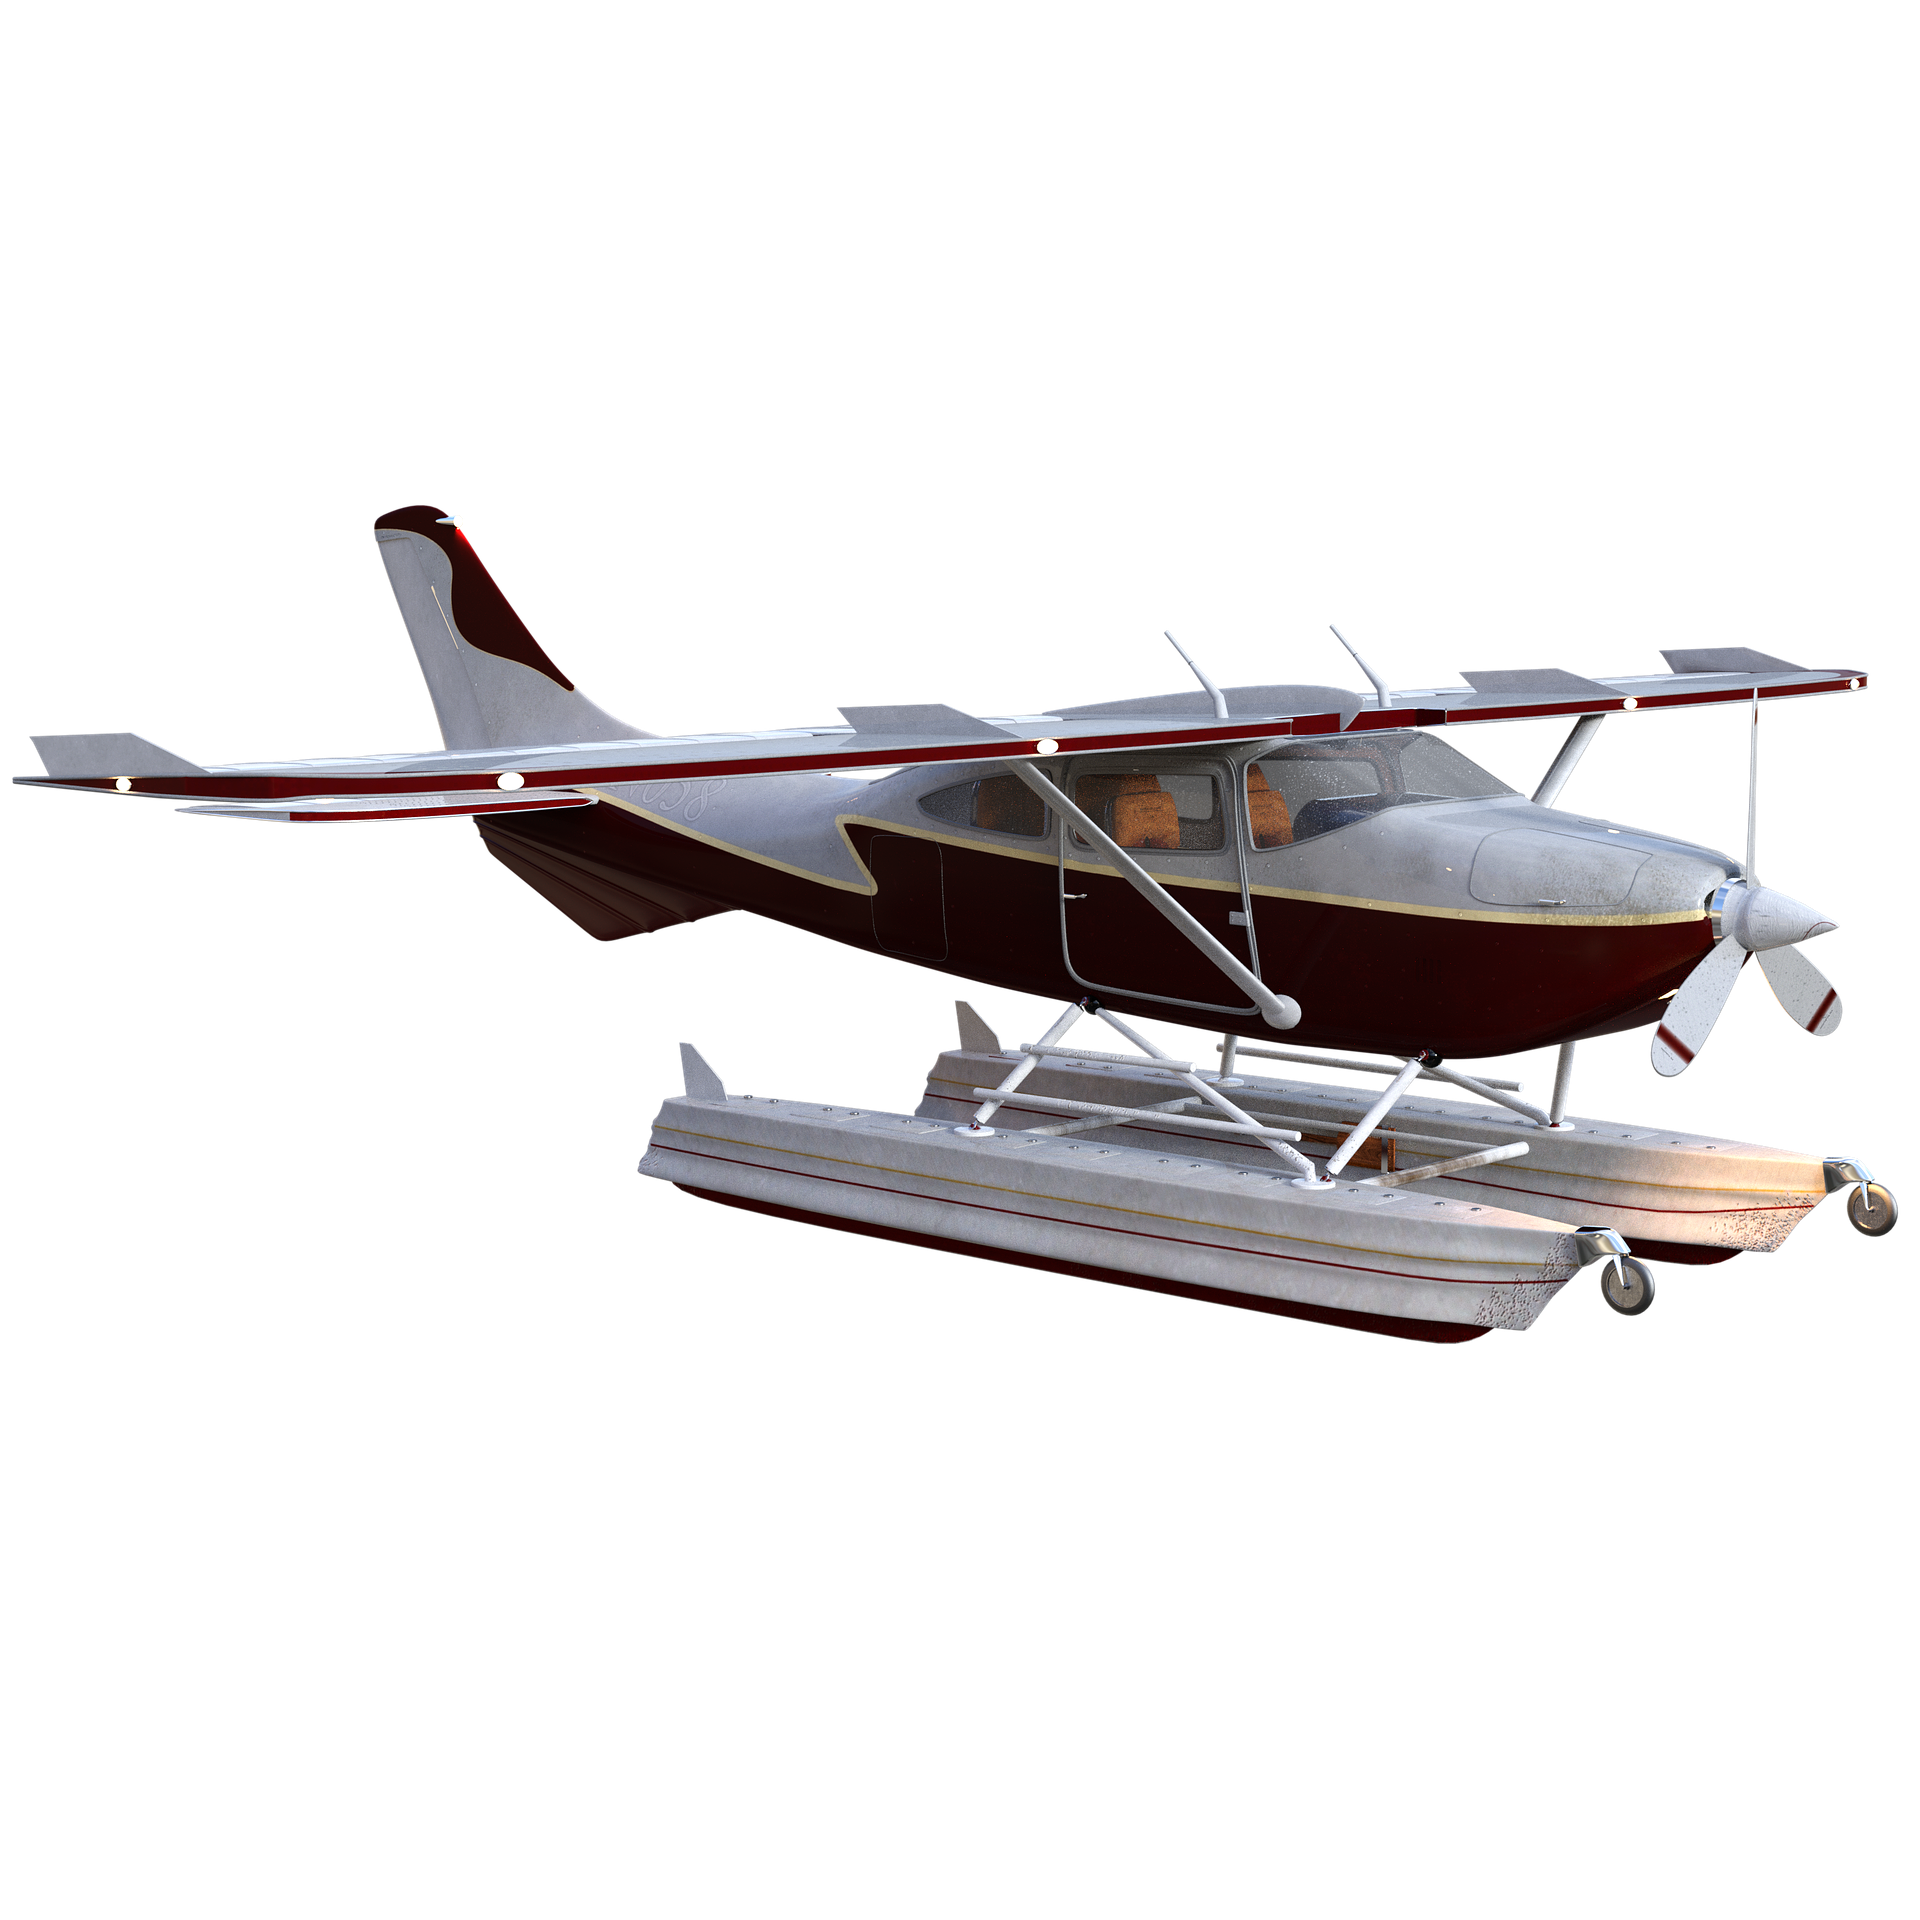 airplane-3989762_1920.png